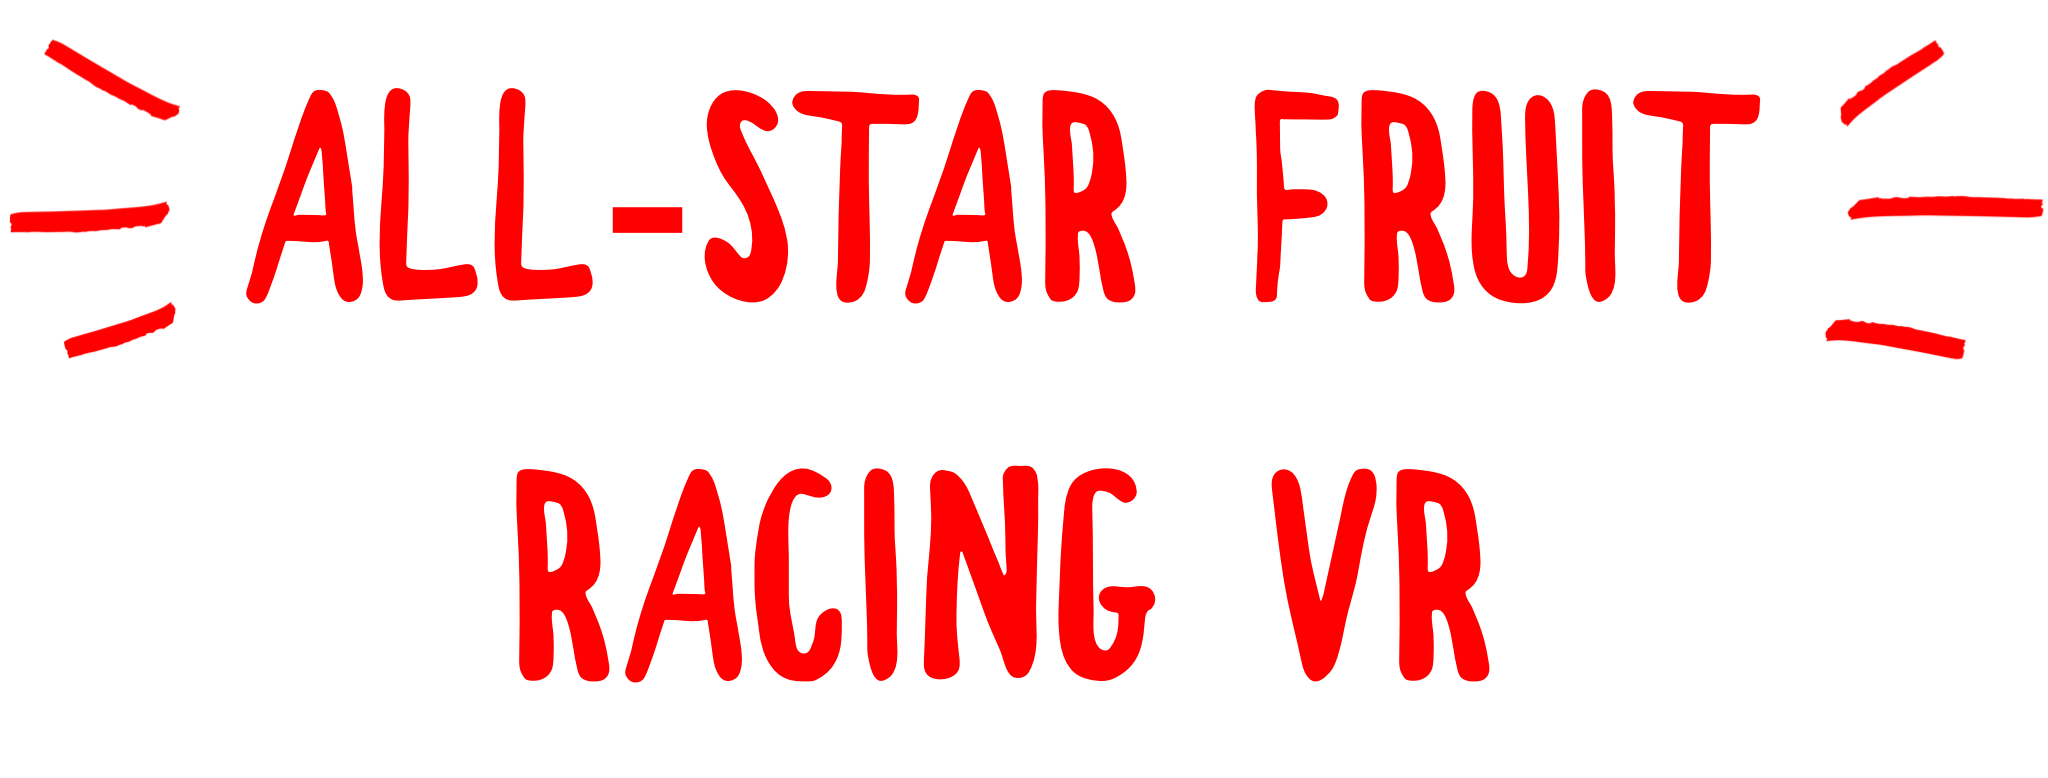 All Star FRVR header